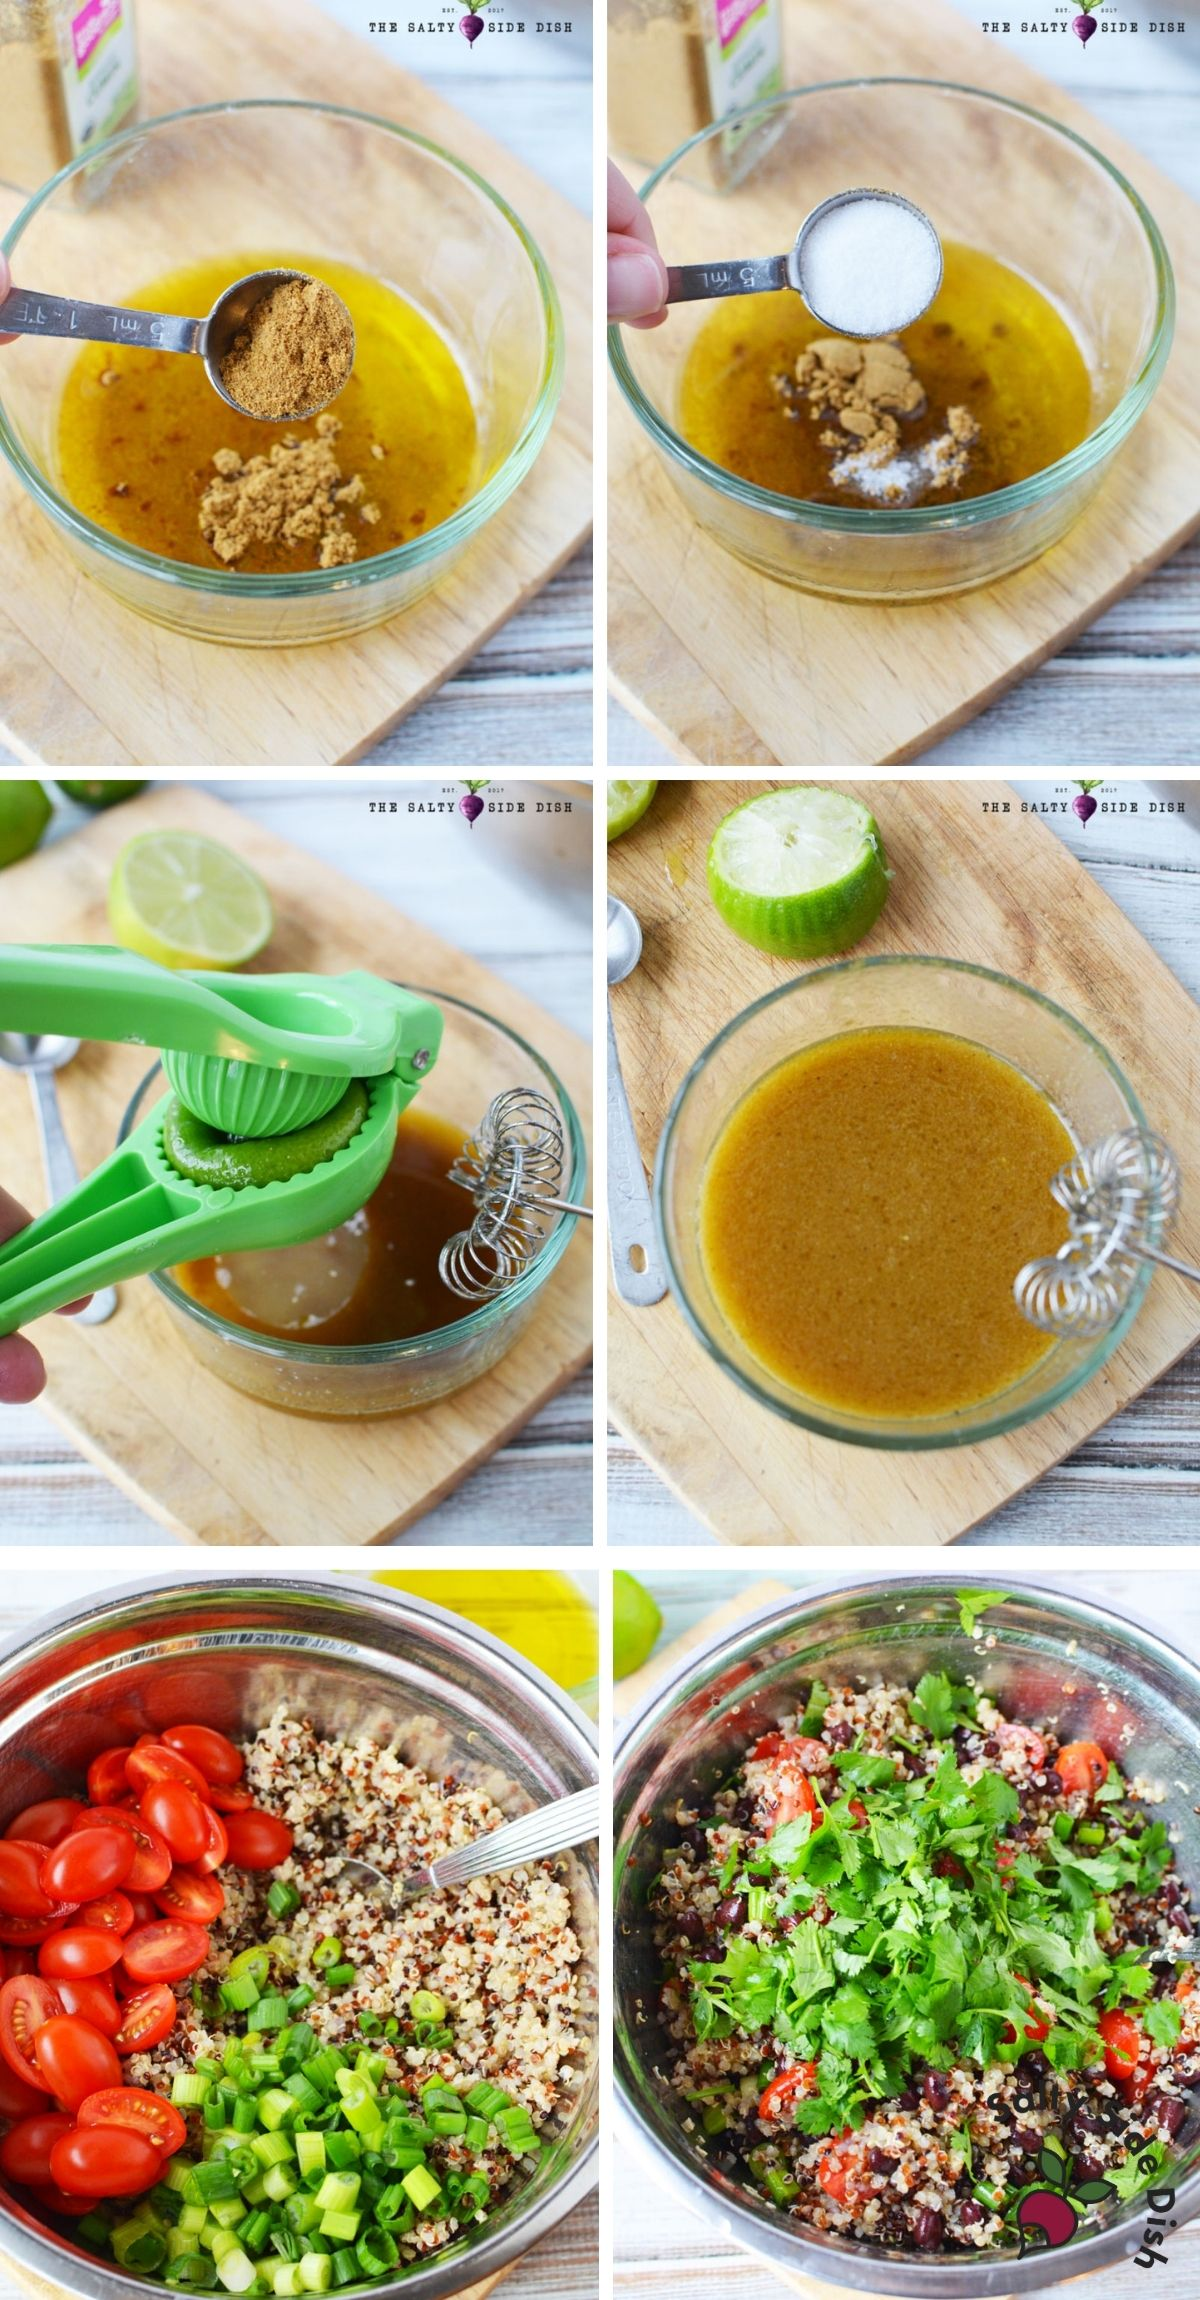 making dressing in a bowl and adding to quinoa salad ingredients